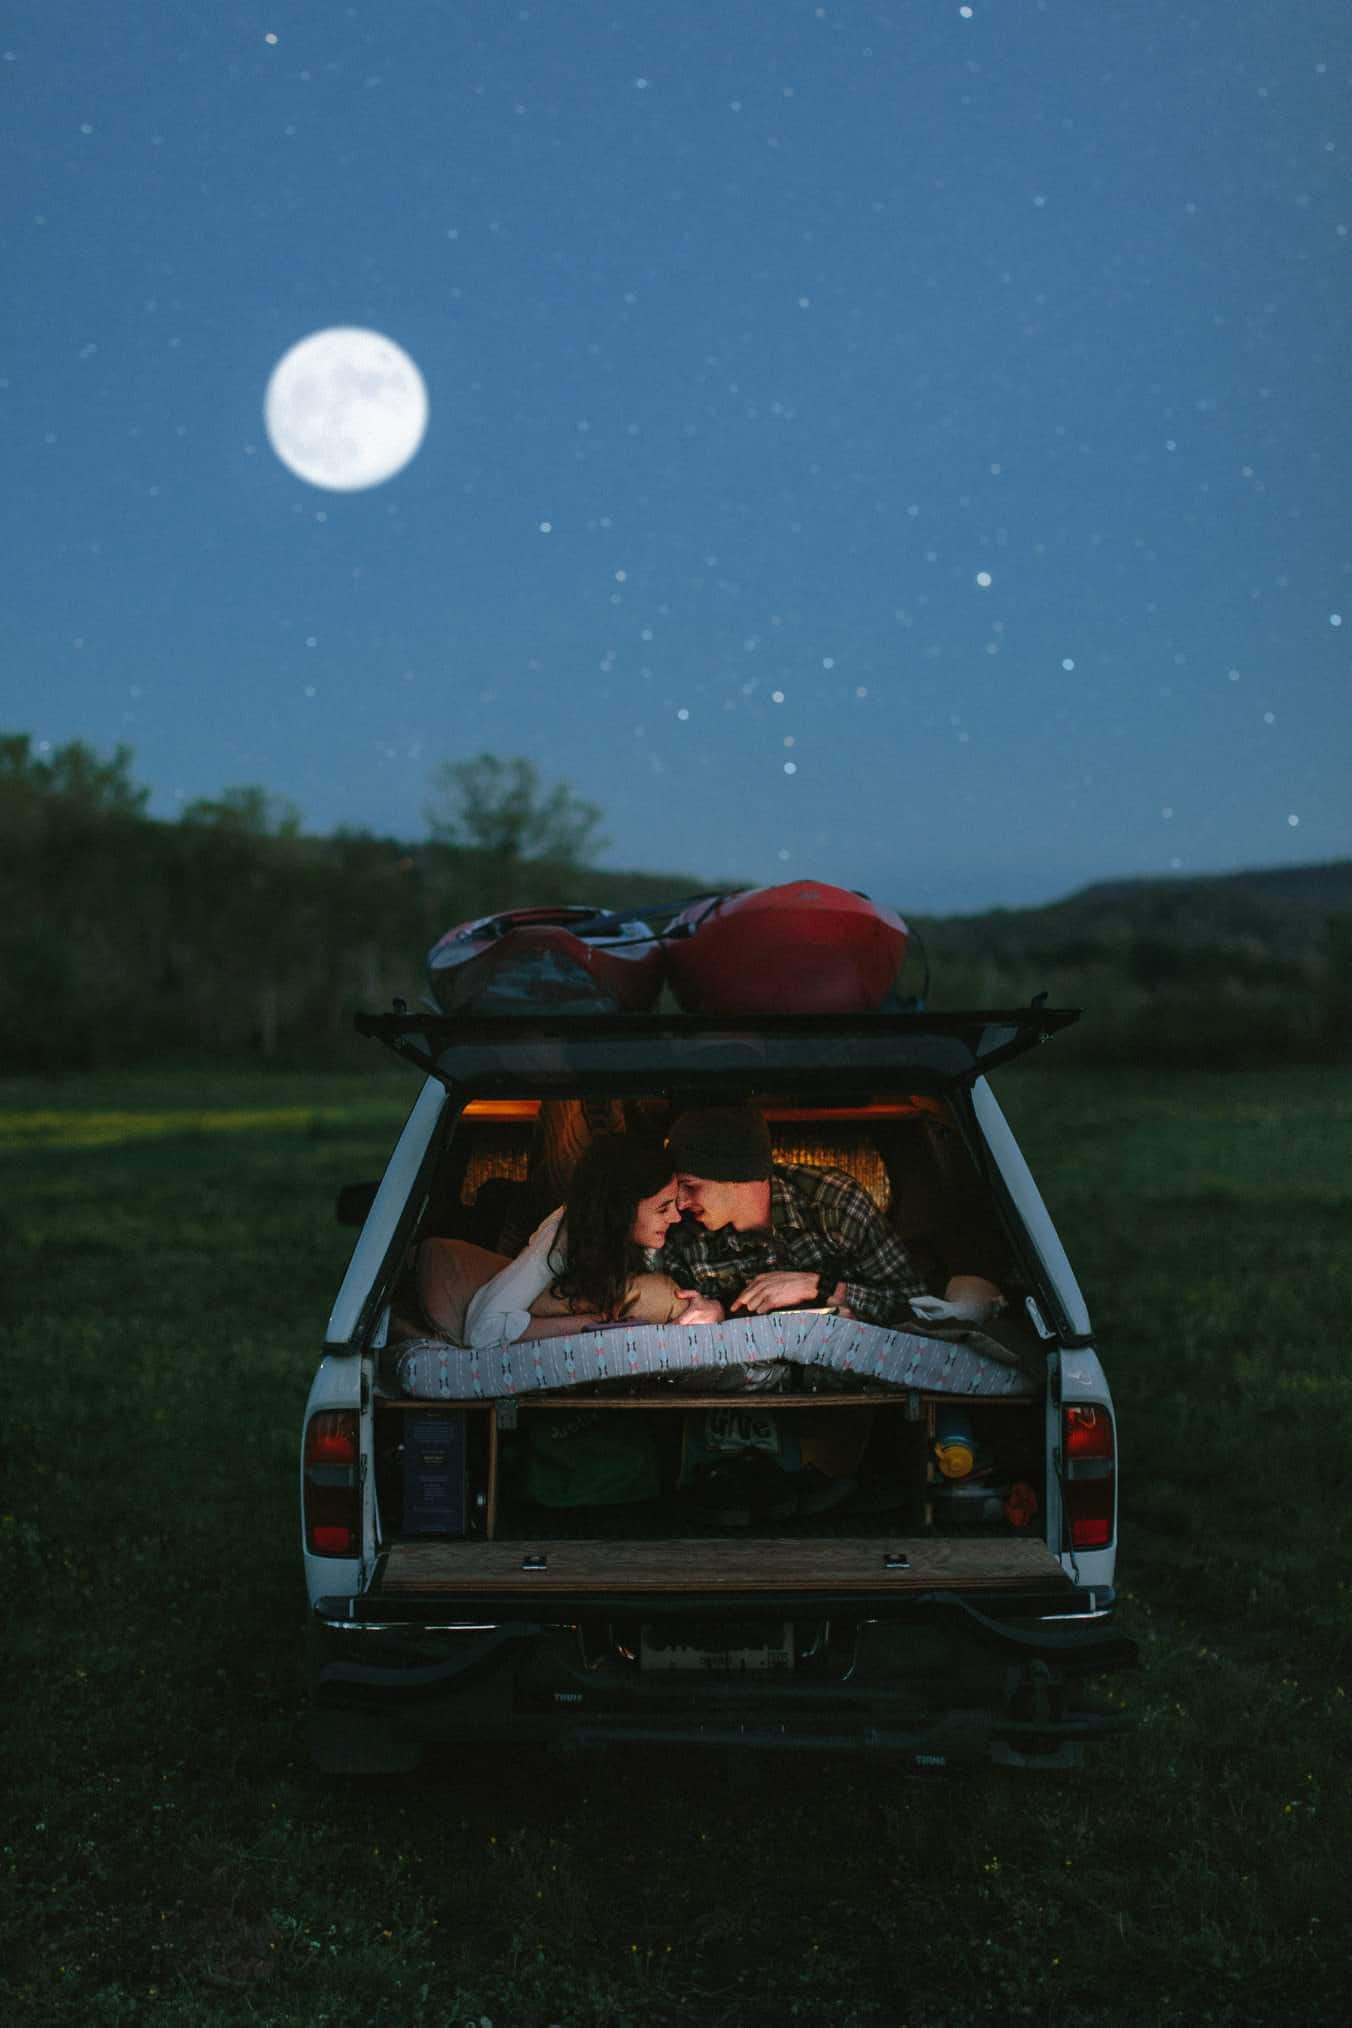 Two lovers laying in the back of their car while the moon is shining